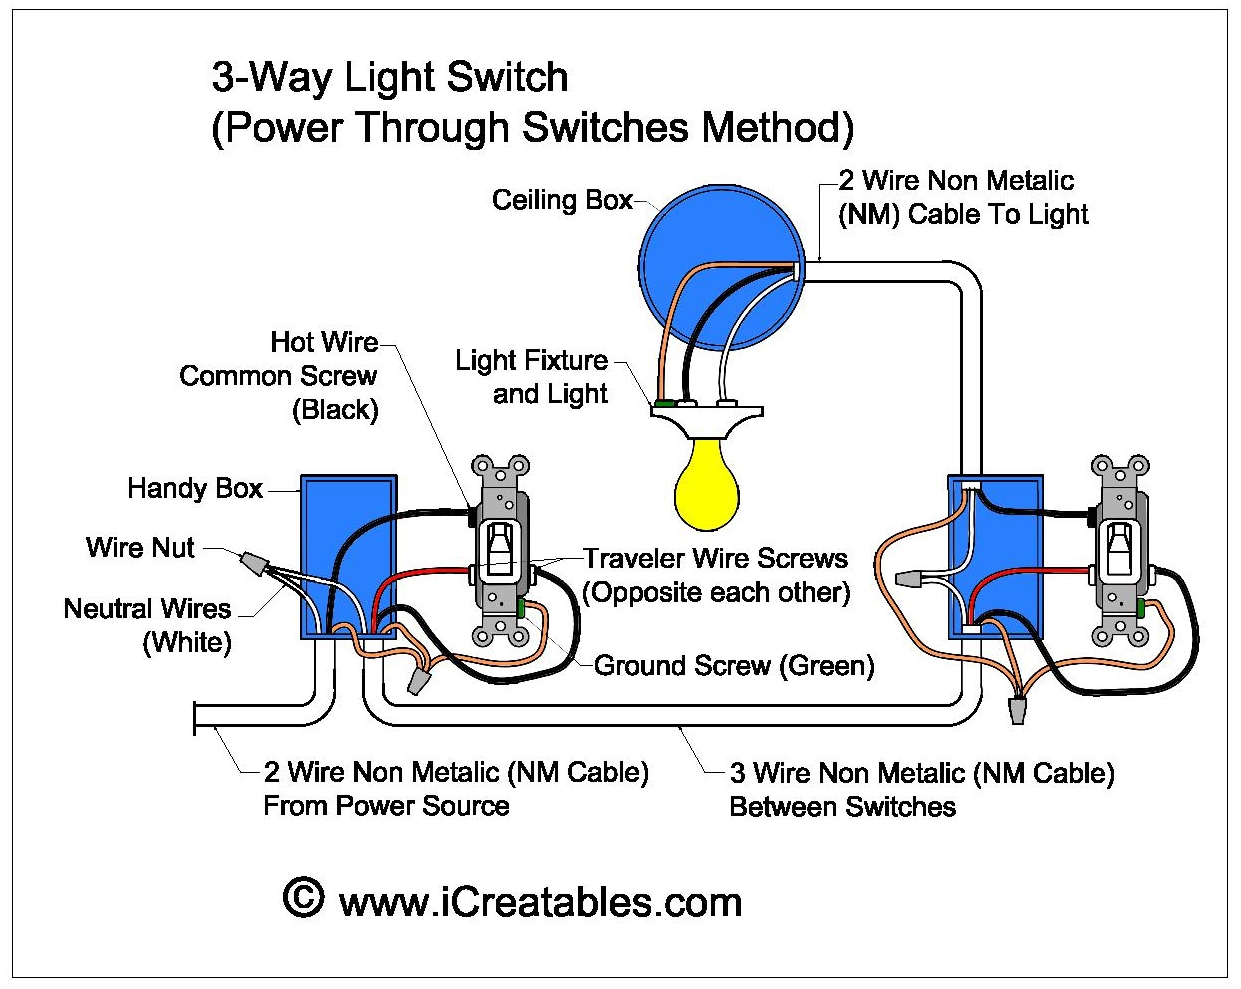 electrical wiring diagram light switch eye eyeshadow placement wire a three way icreatables